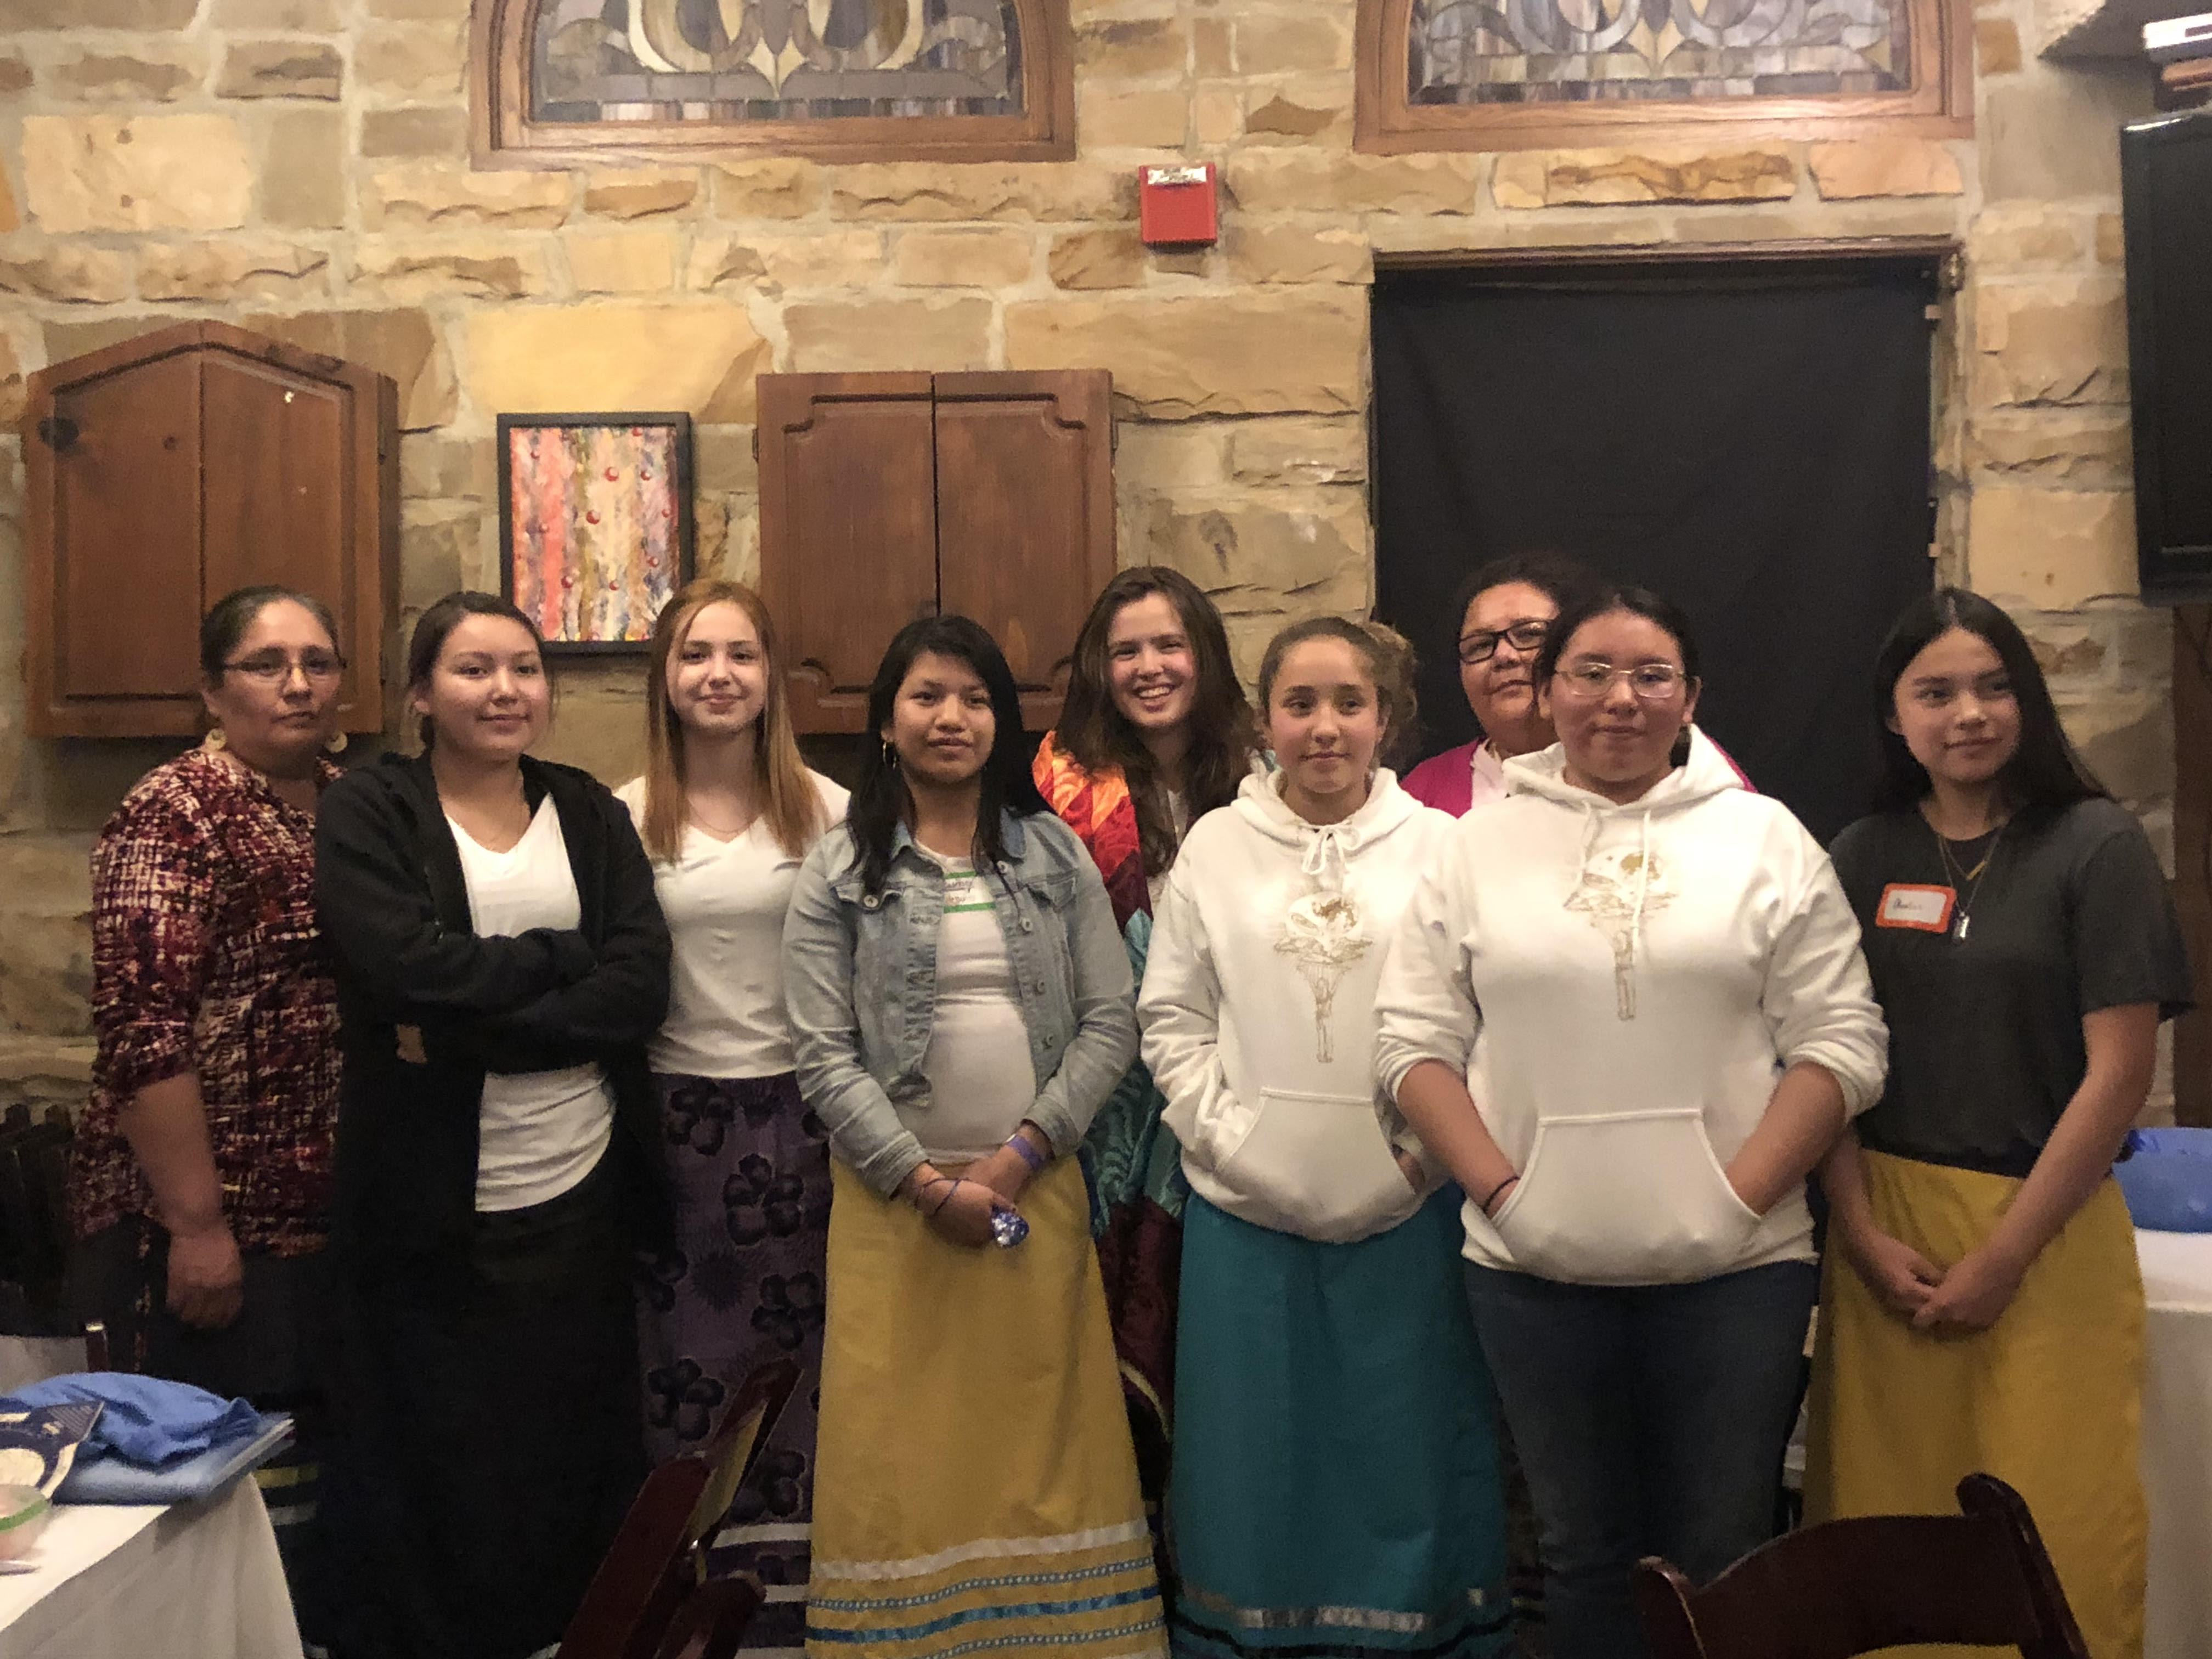 Following the exchange of star stories and science, celebrating the spirit of the entire weekend (here: all of our Lakota guests with LCEP founder Ava Polzin), March 2019